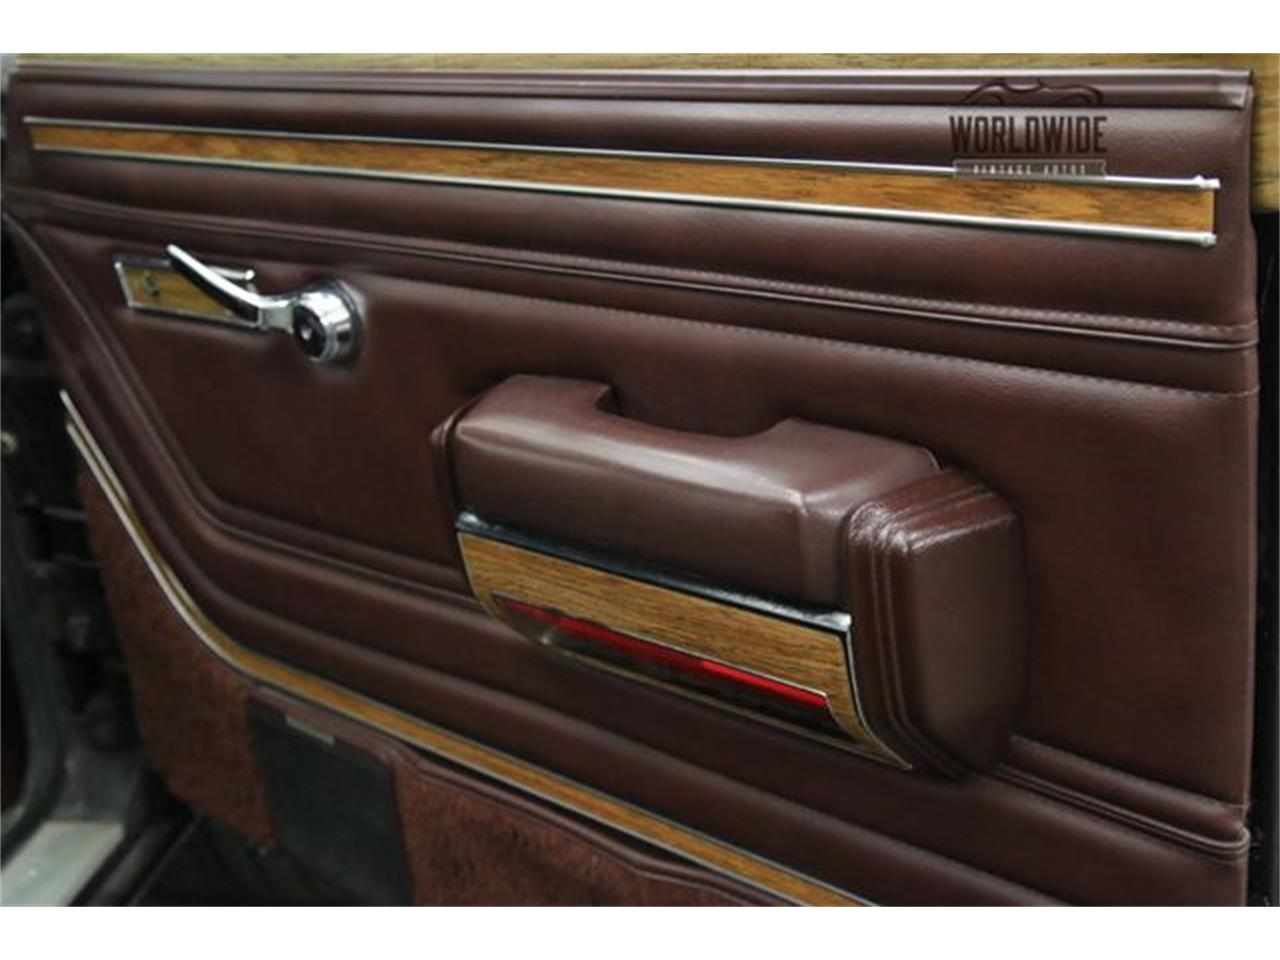 Large Picture of '90 Wagoneer located in Colorado - $14,900.00 Offered by Worldwide Vintage Autos - LTP2